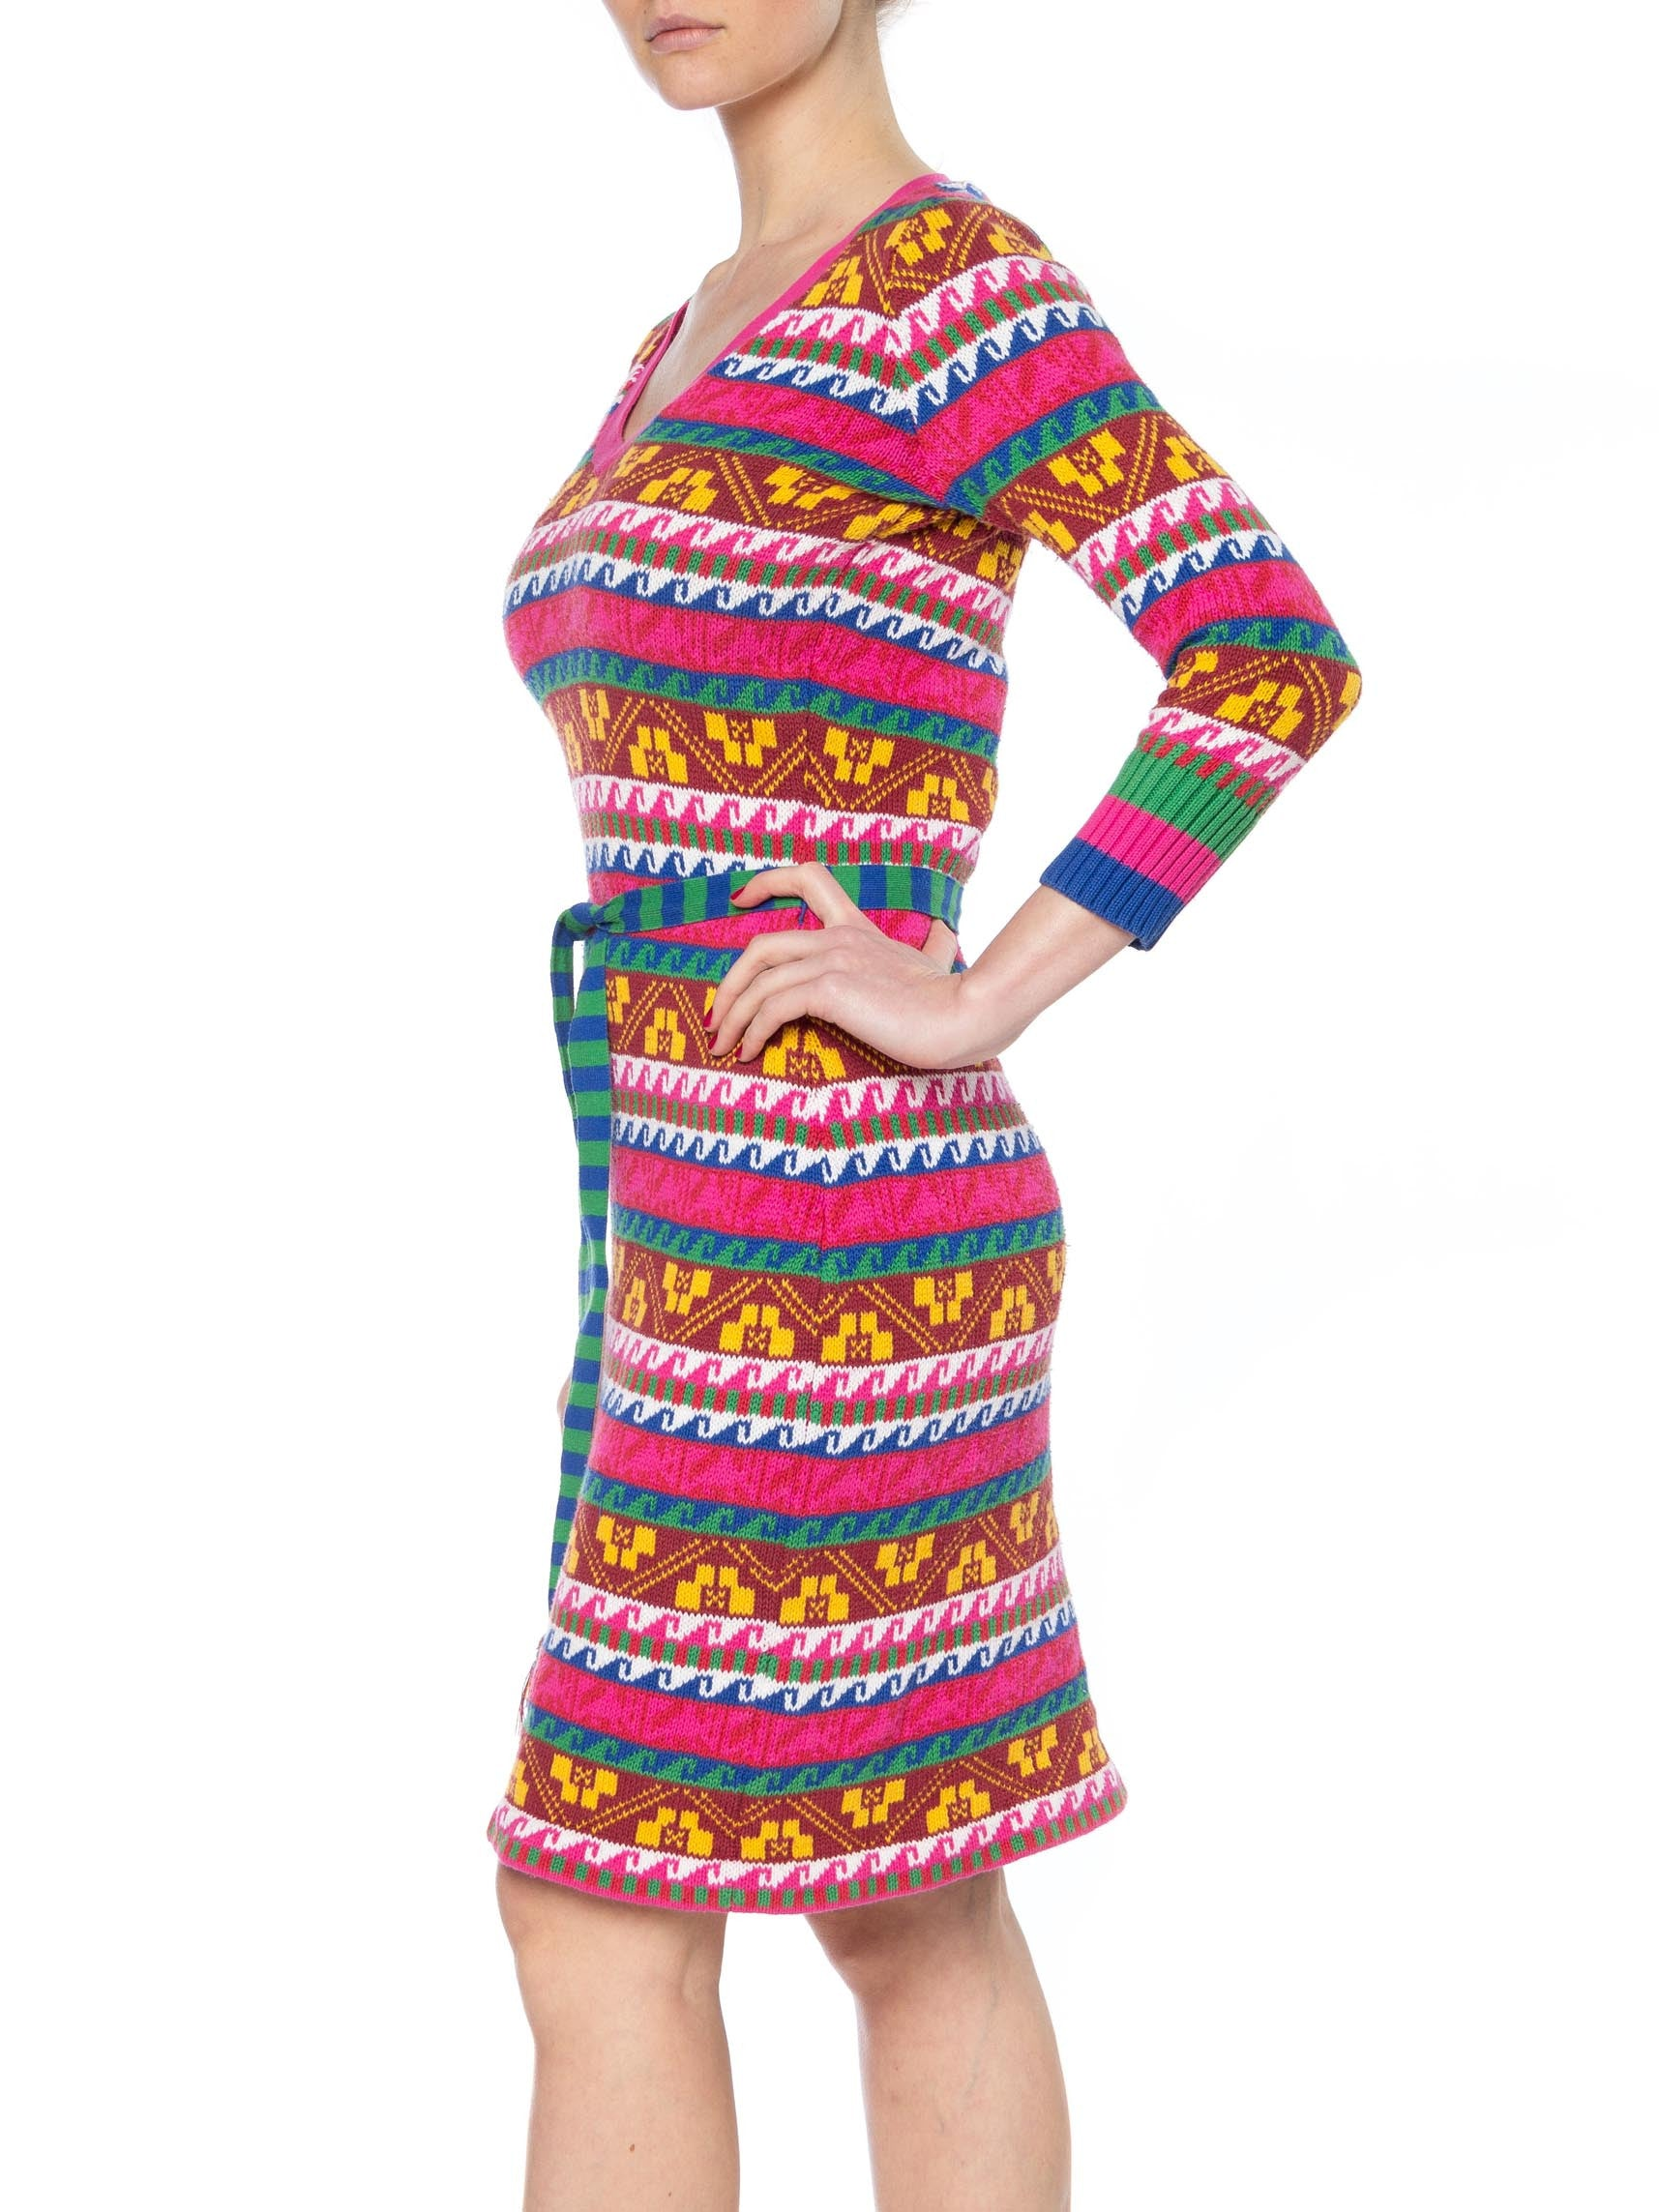 1990S BETSEY JOHNSON Multicolor Striped Cotton Sweater Dress With Belt